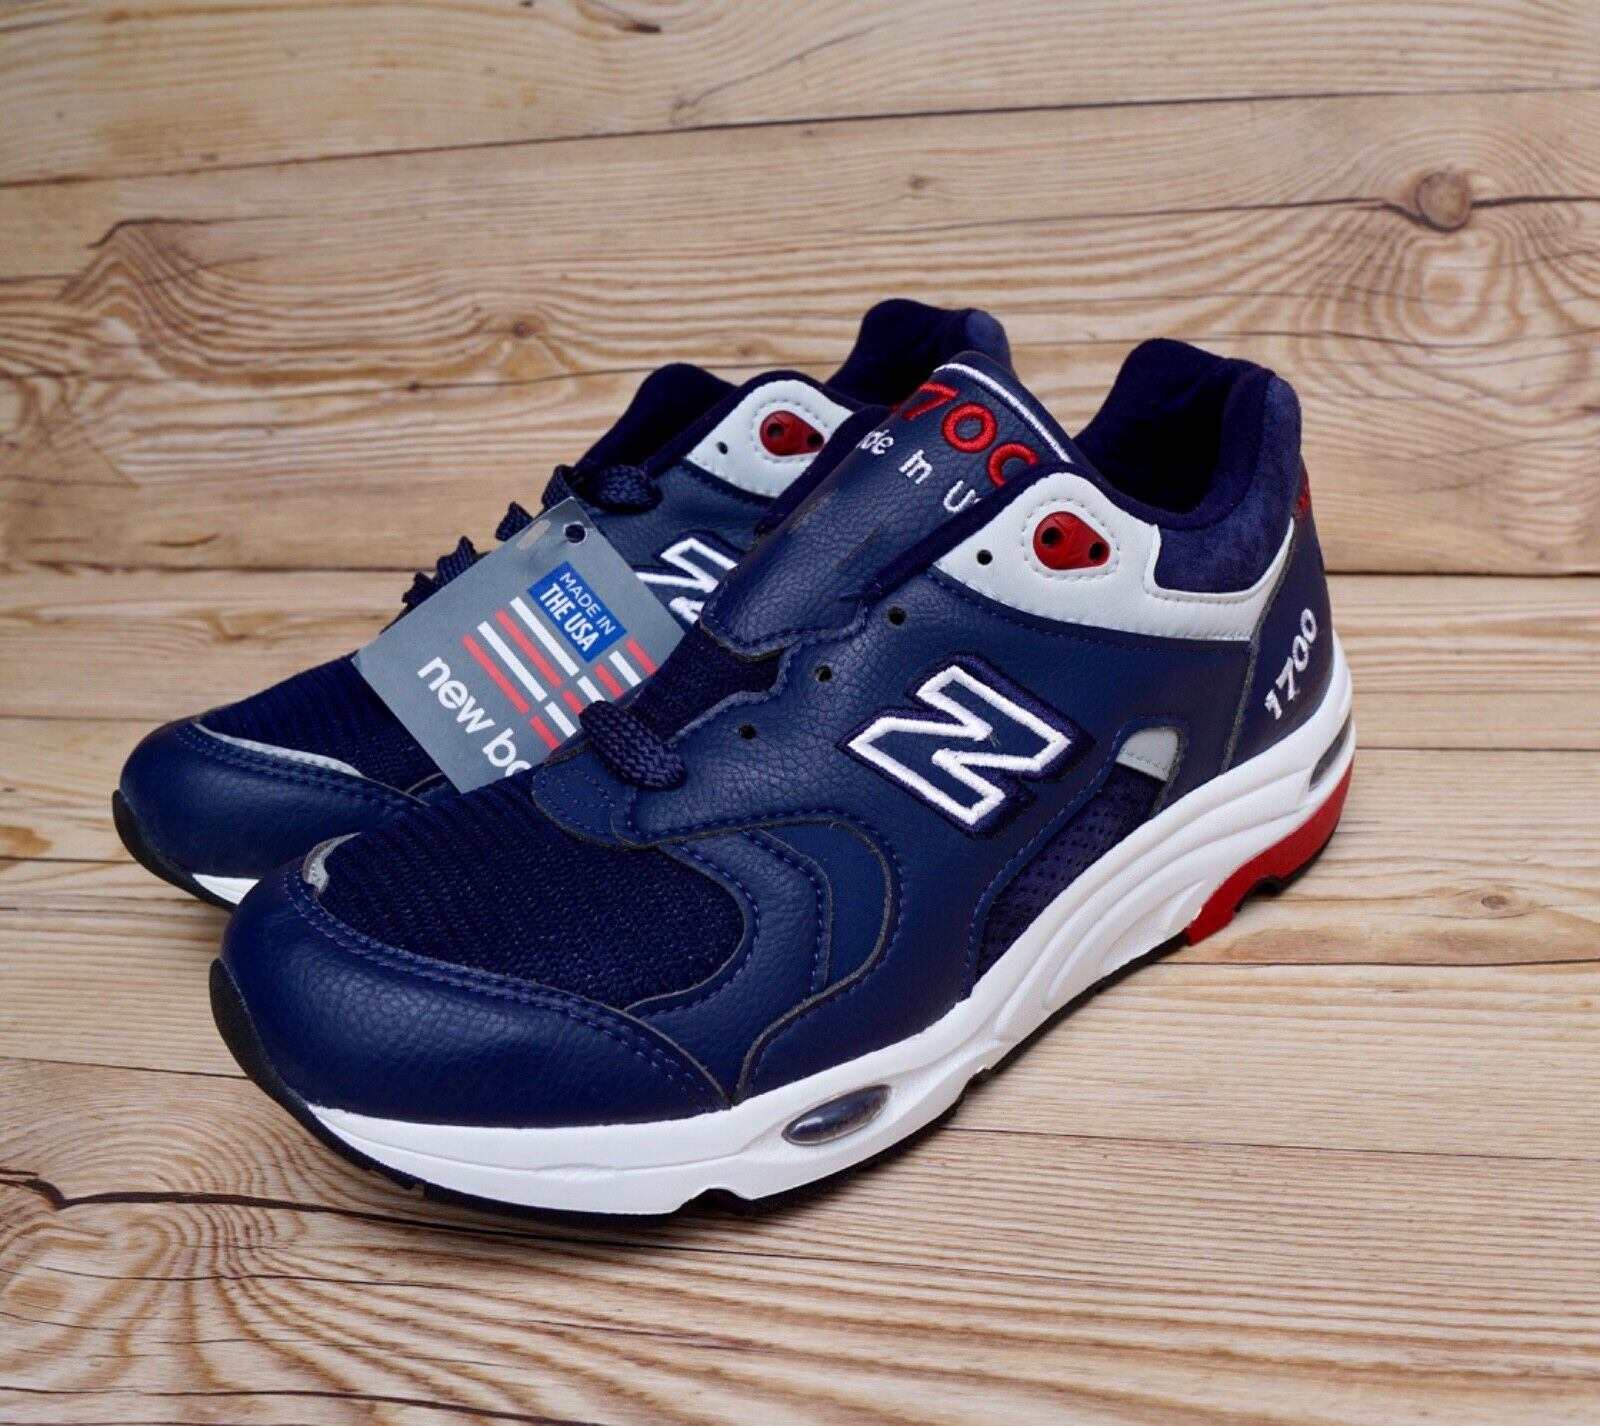 New Balance 1700 Made In USA Navy White Red Men's Size 7 Women's Size 8.5 New